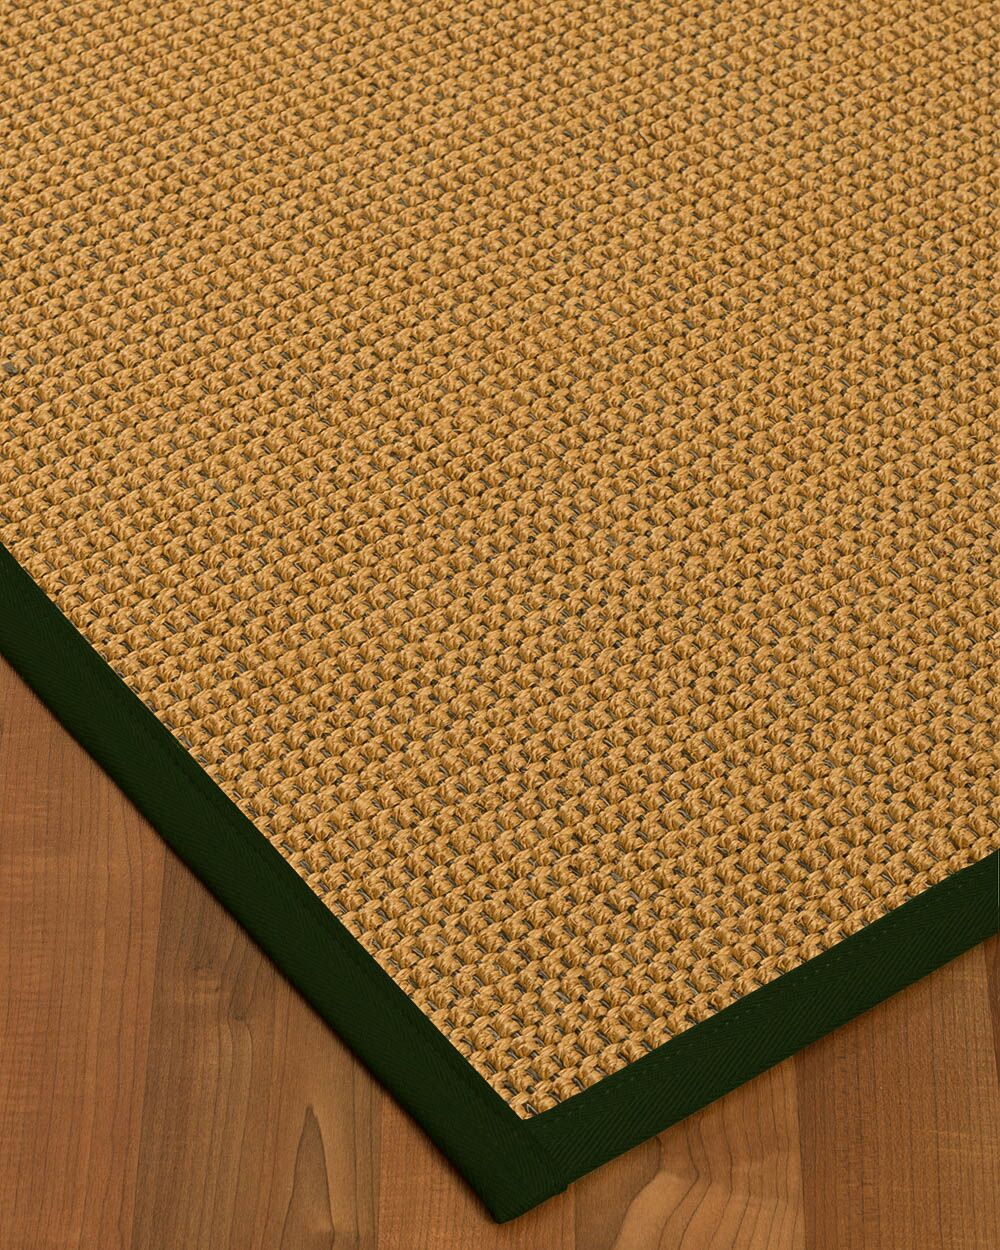 Atia Border Hand-Woven Beige/Moss Area Rug Rug Pad Included: No, Rug Size: Rectangle 3' x 5'